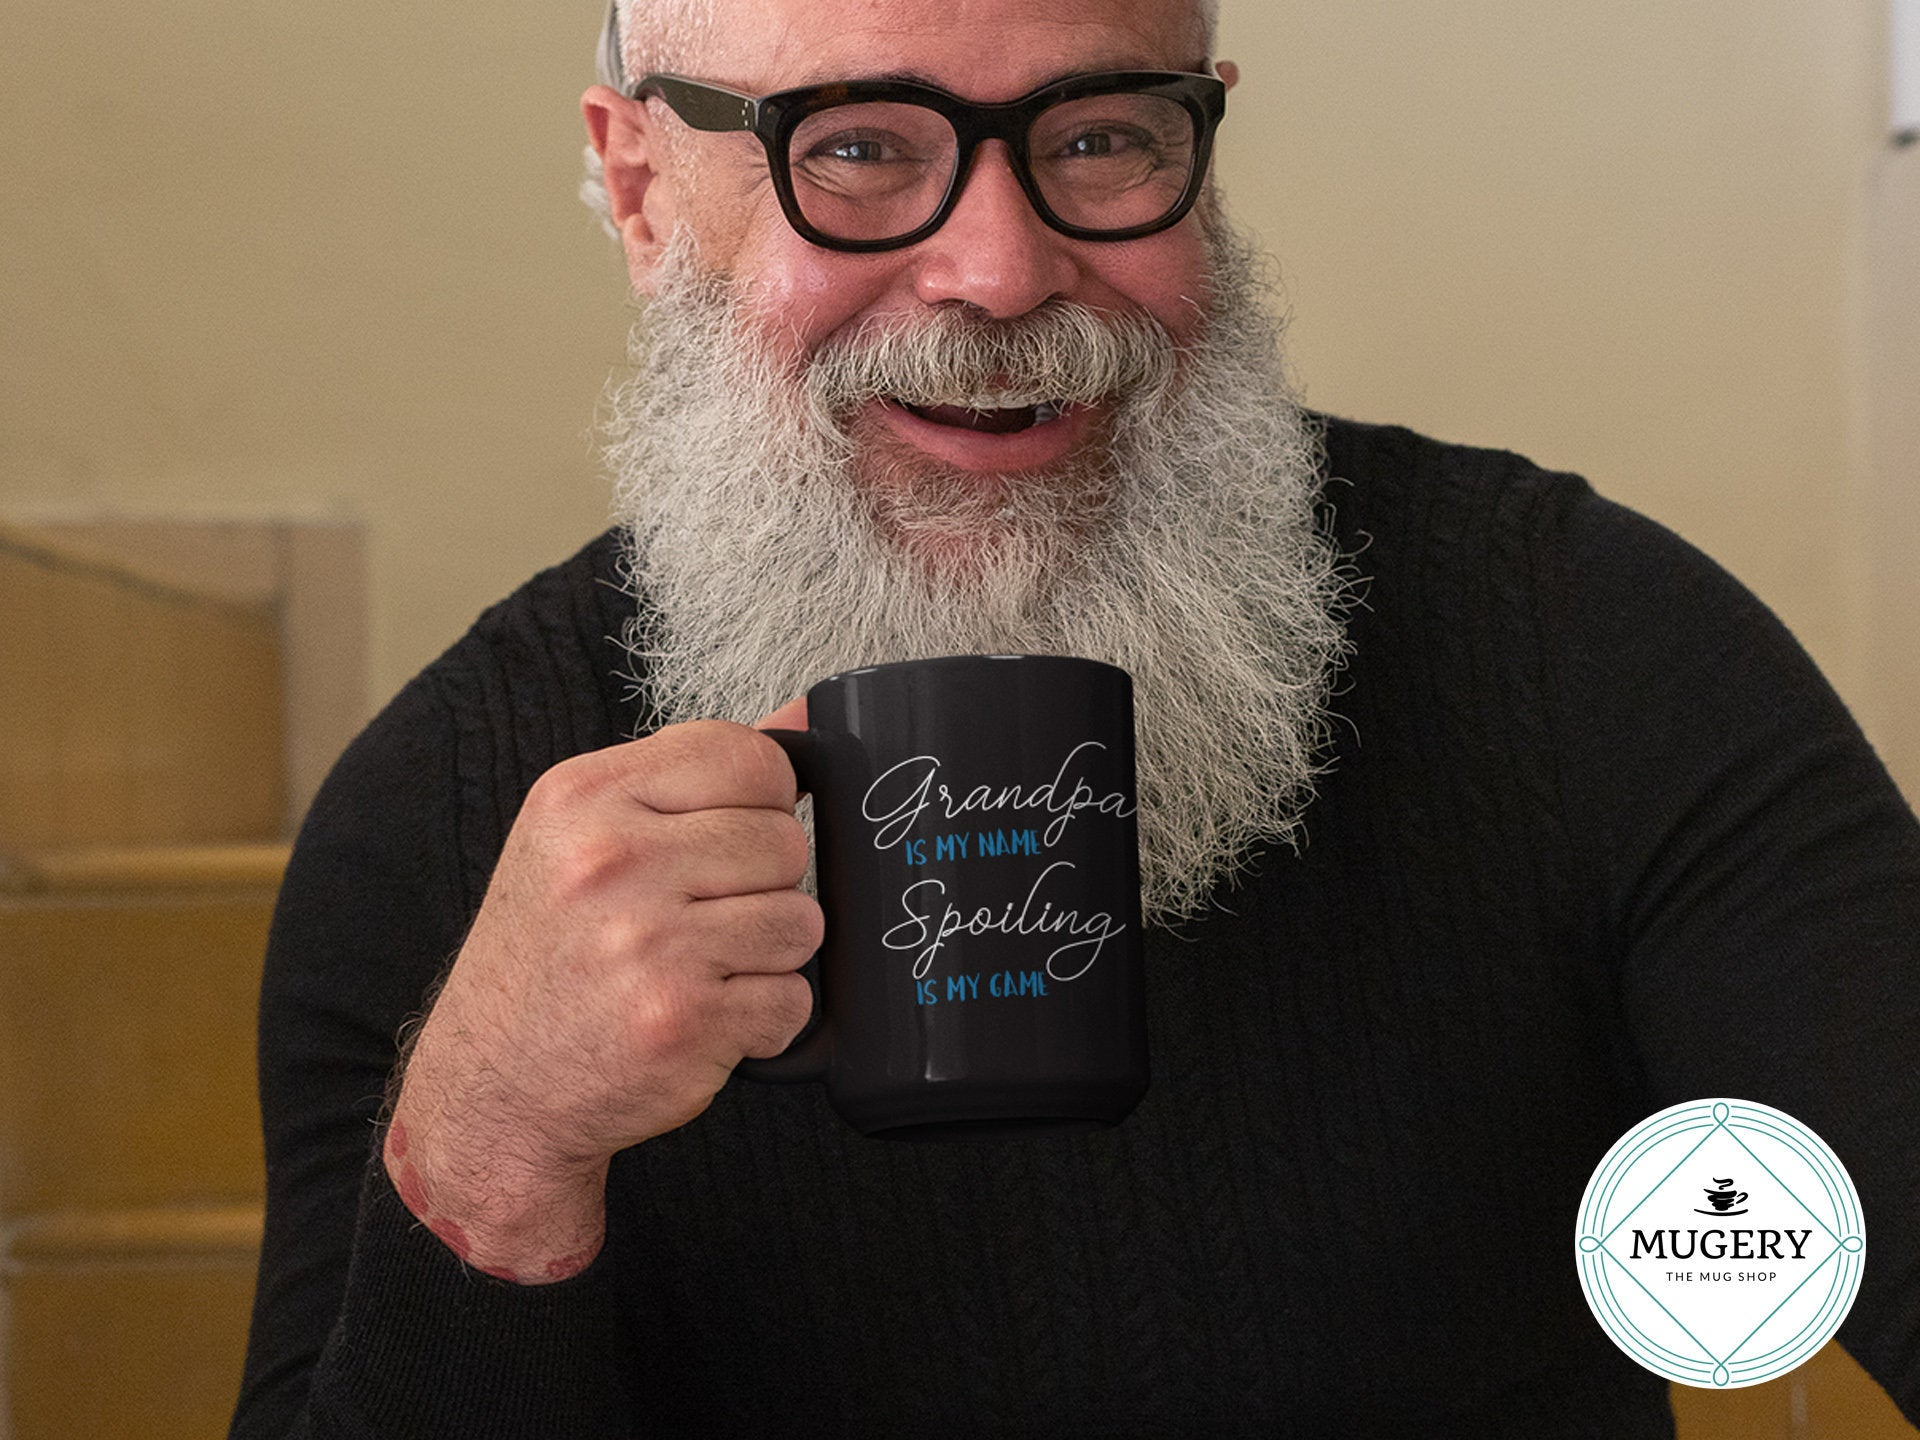 Grandpa is My Name Spoiling is My Game Mug - Guestbookery